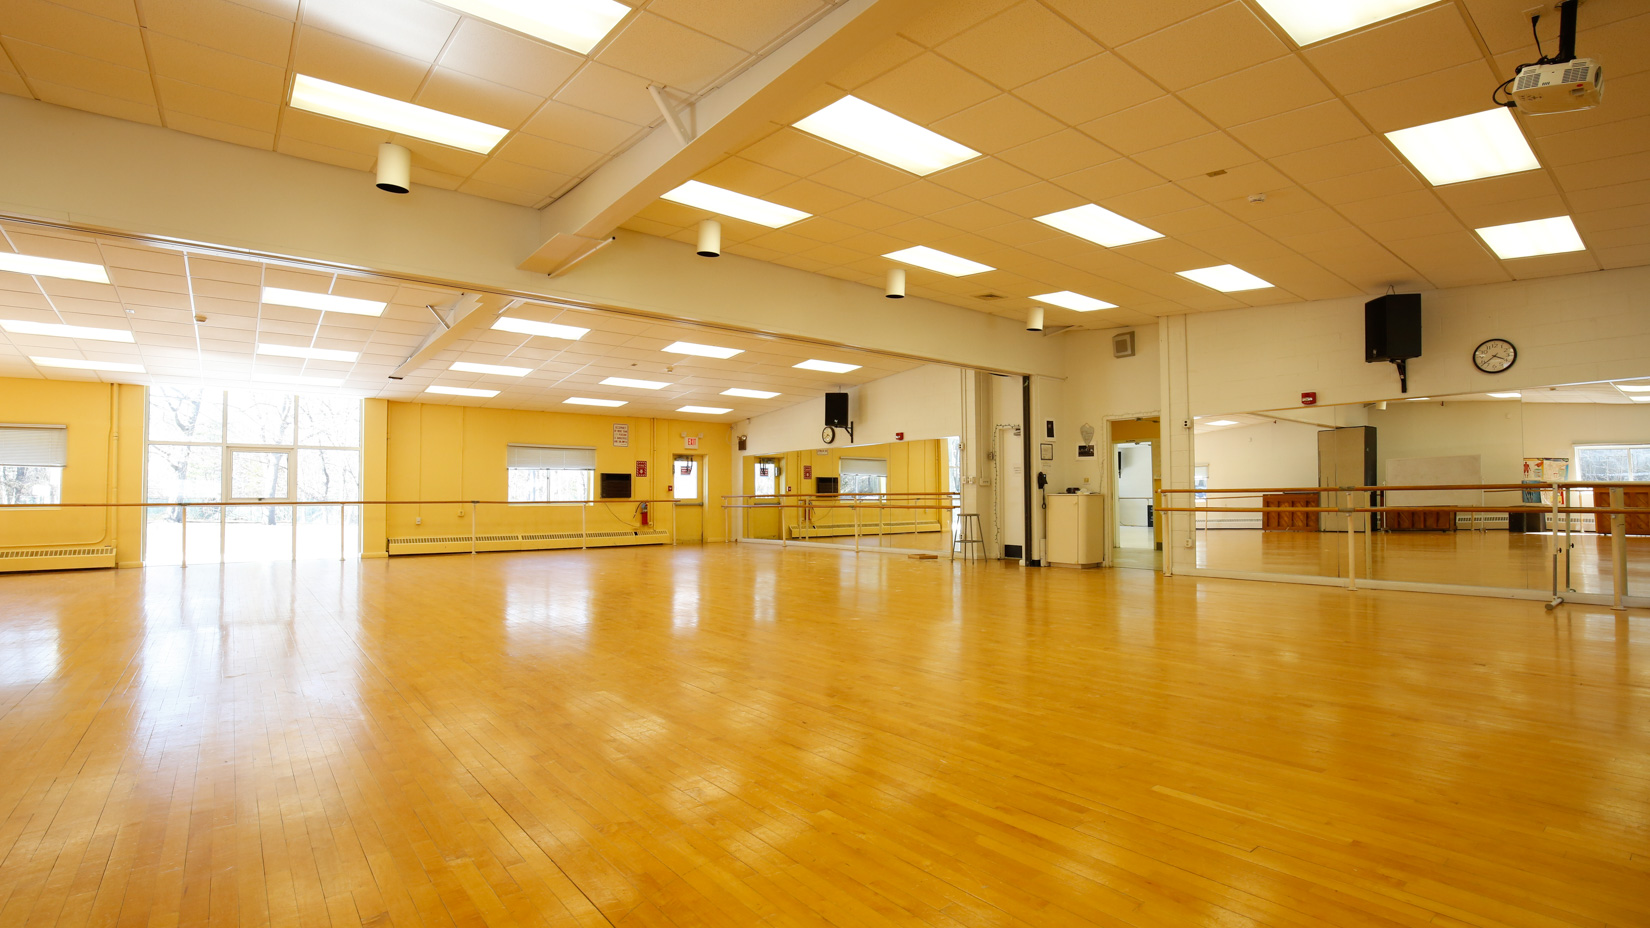 Large dance studio with mirrored walls and wooden floors